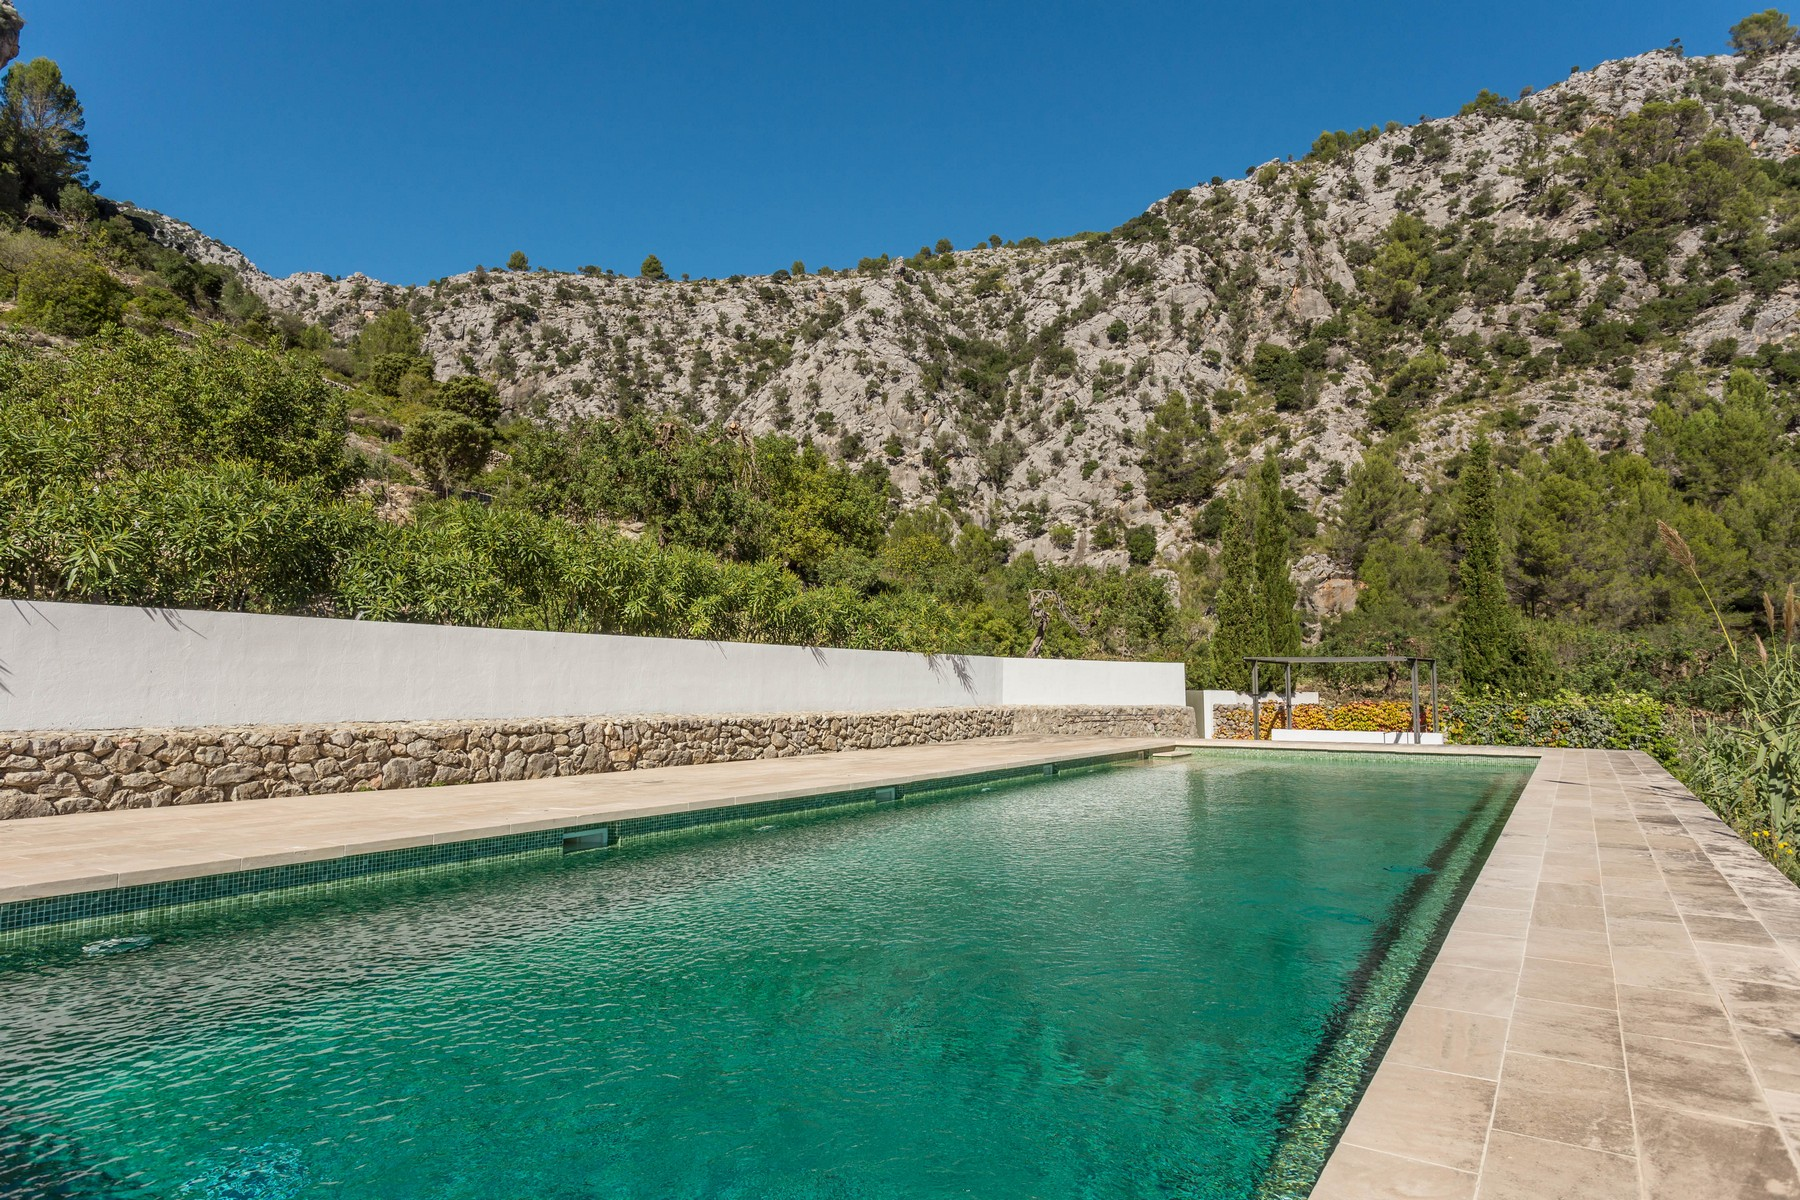 Single Family Home for Sale at Idyllic manor in the mountains Selva, Mallorca 07013 Spain